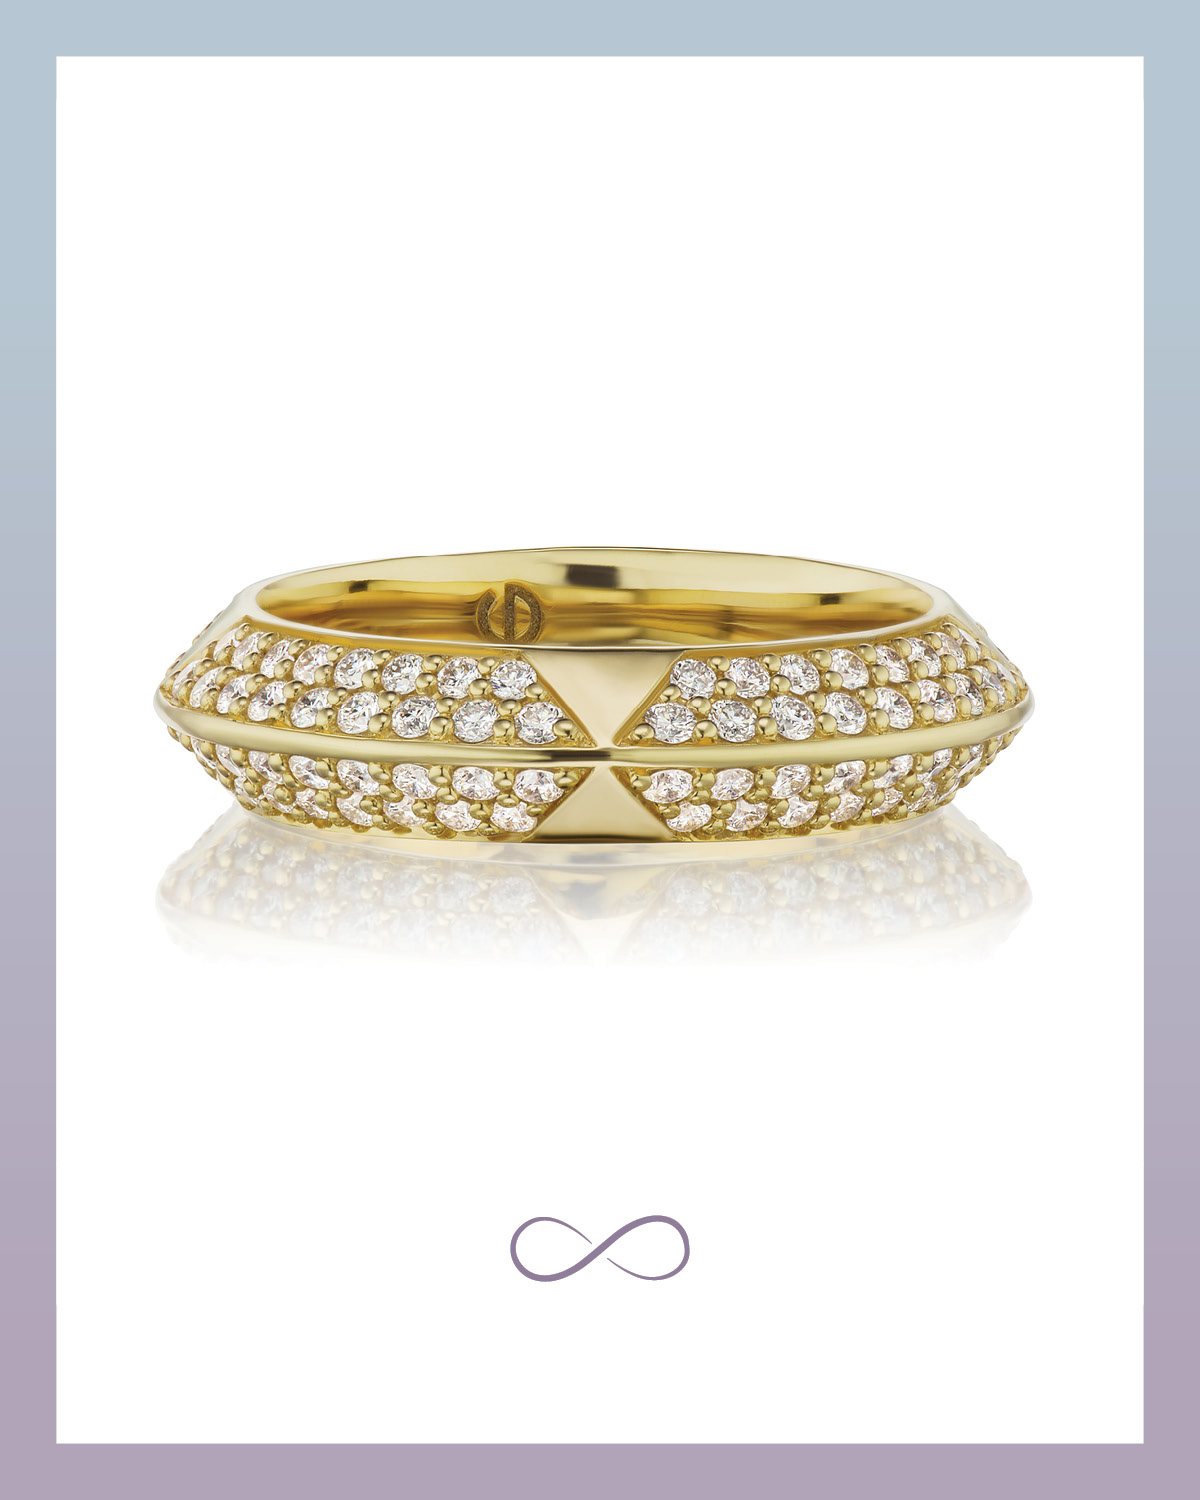 Rosa Two row pave eternity band with diamonds from Harwell Godfrey set in yellow gold